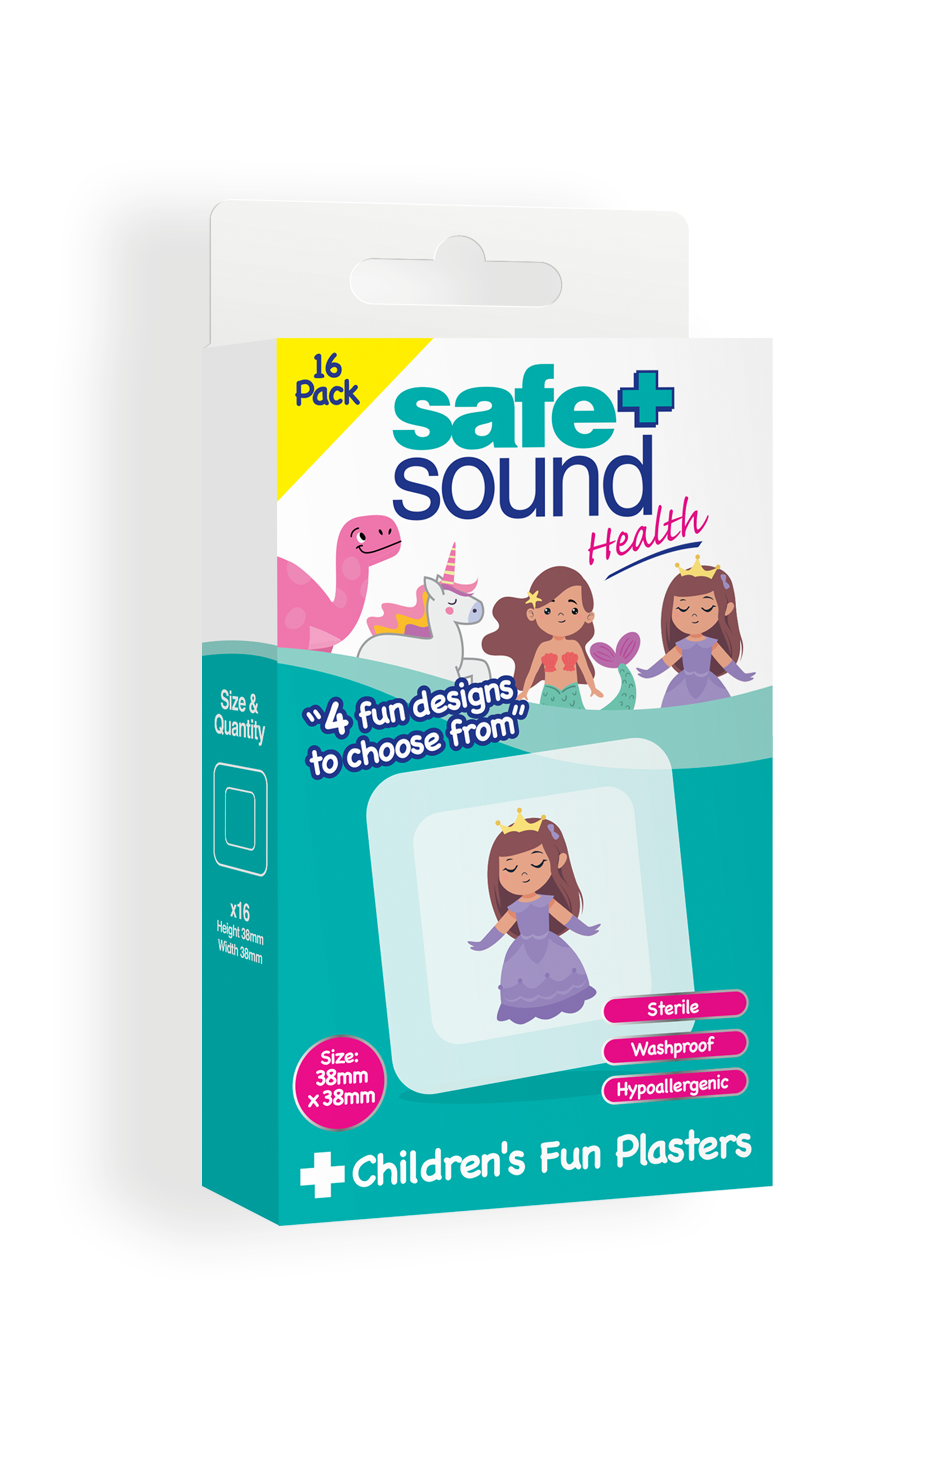 Safe and Sound Health's Kid Fun Plasters – Unicorn, Dinosaur, Mermaid & Princess Design